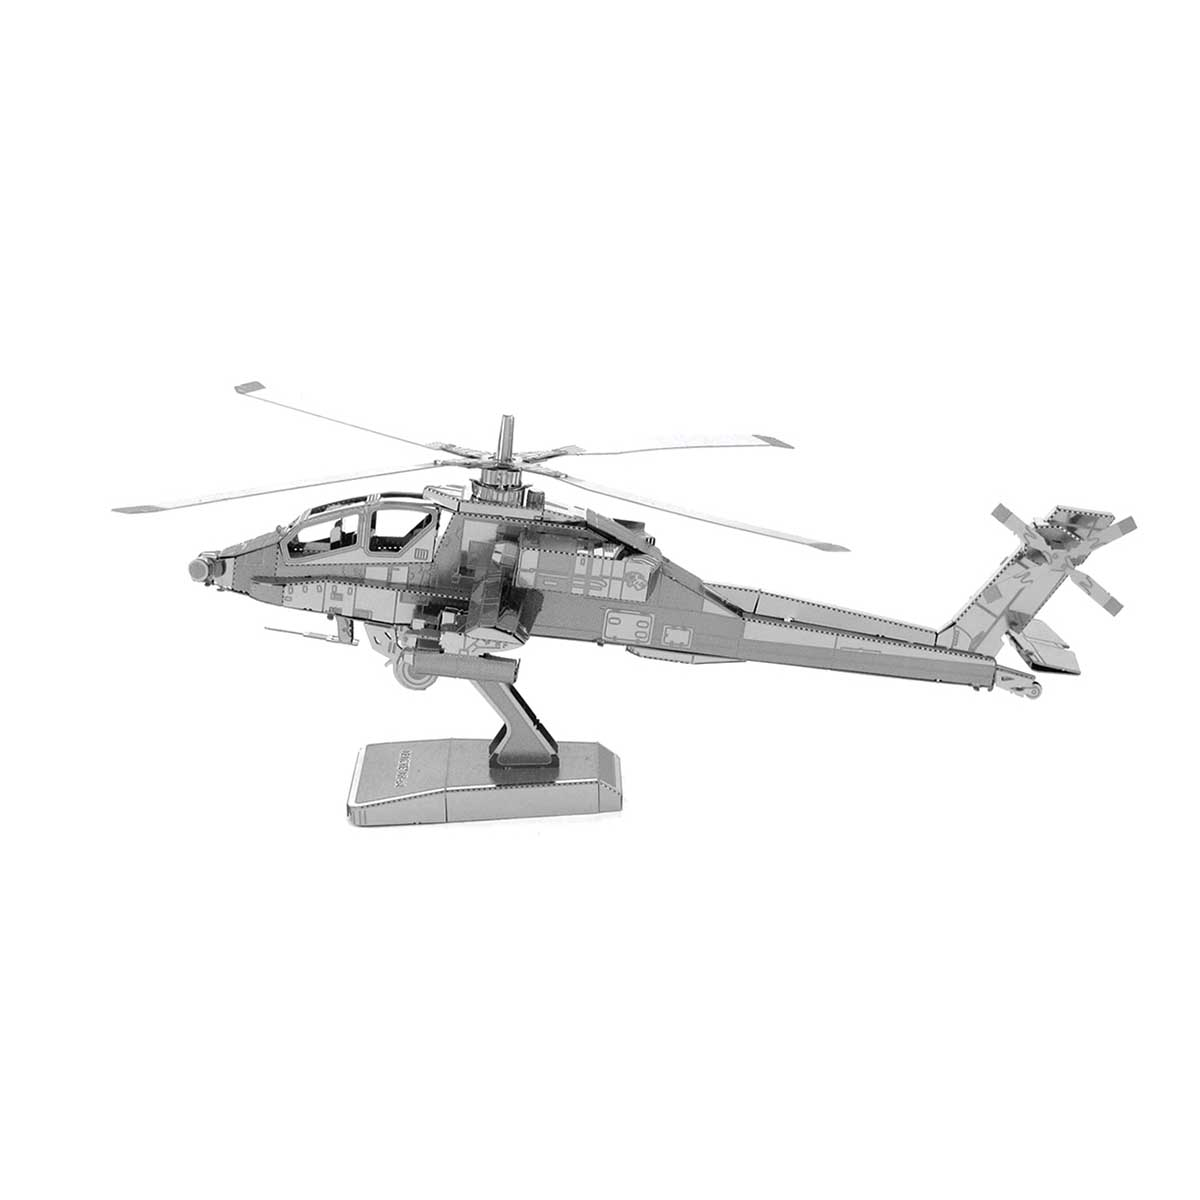 AH-64 Apache Boeing helicopter Planes Metal Puzzles